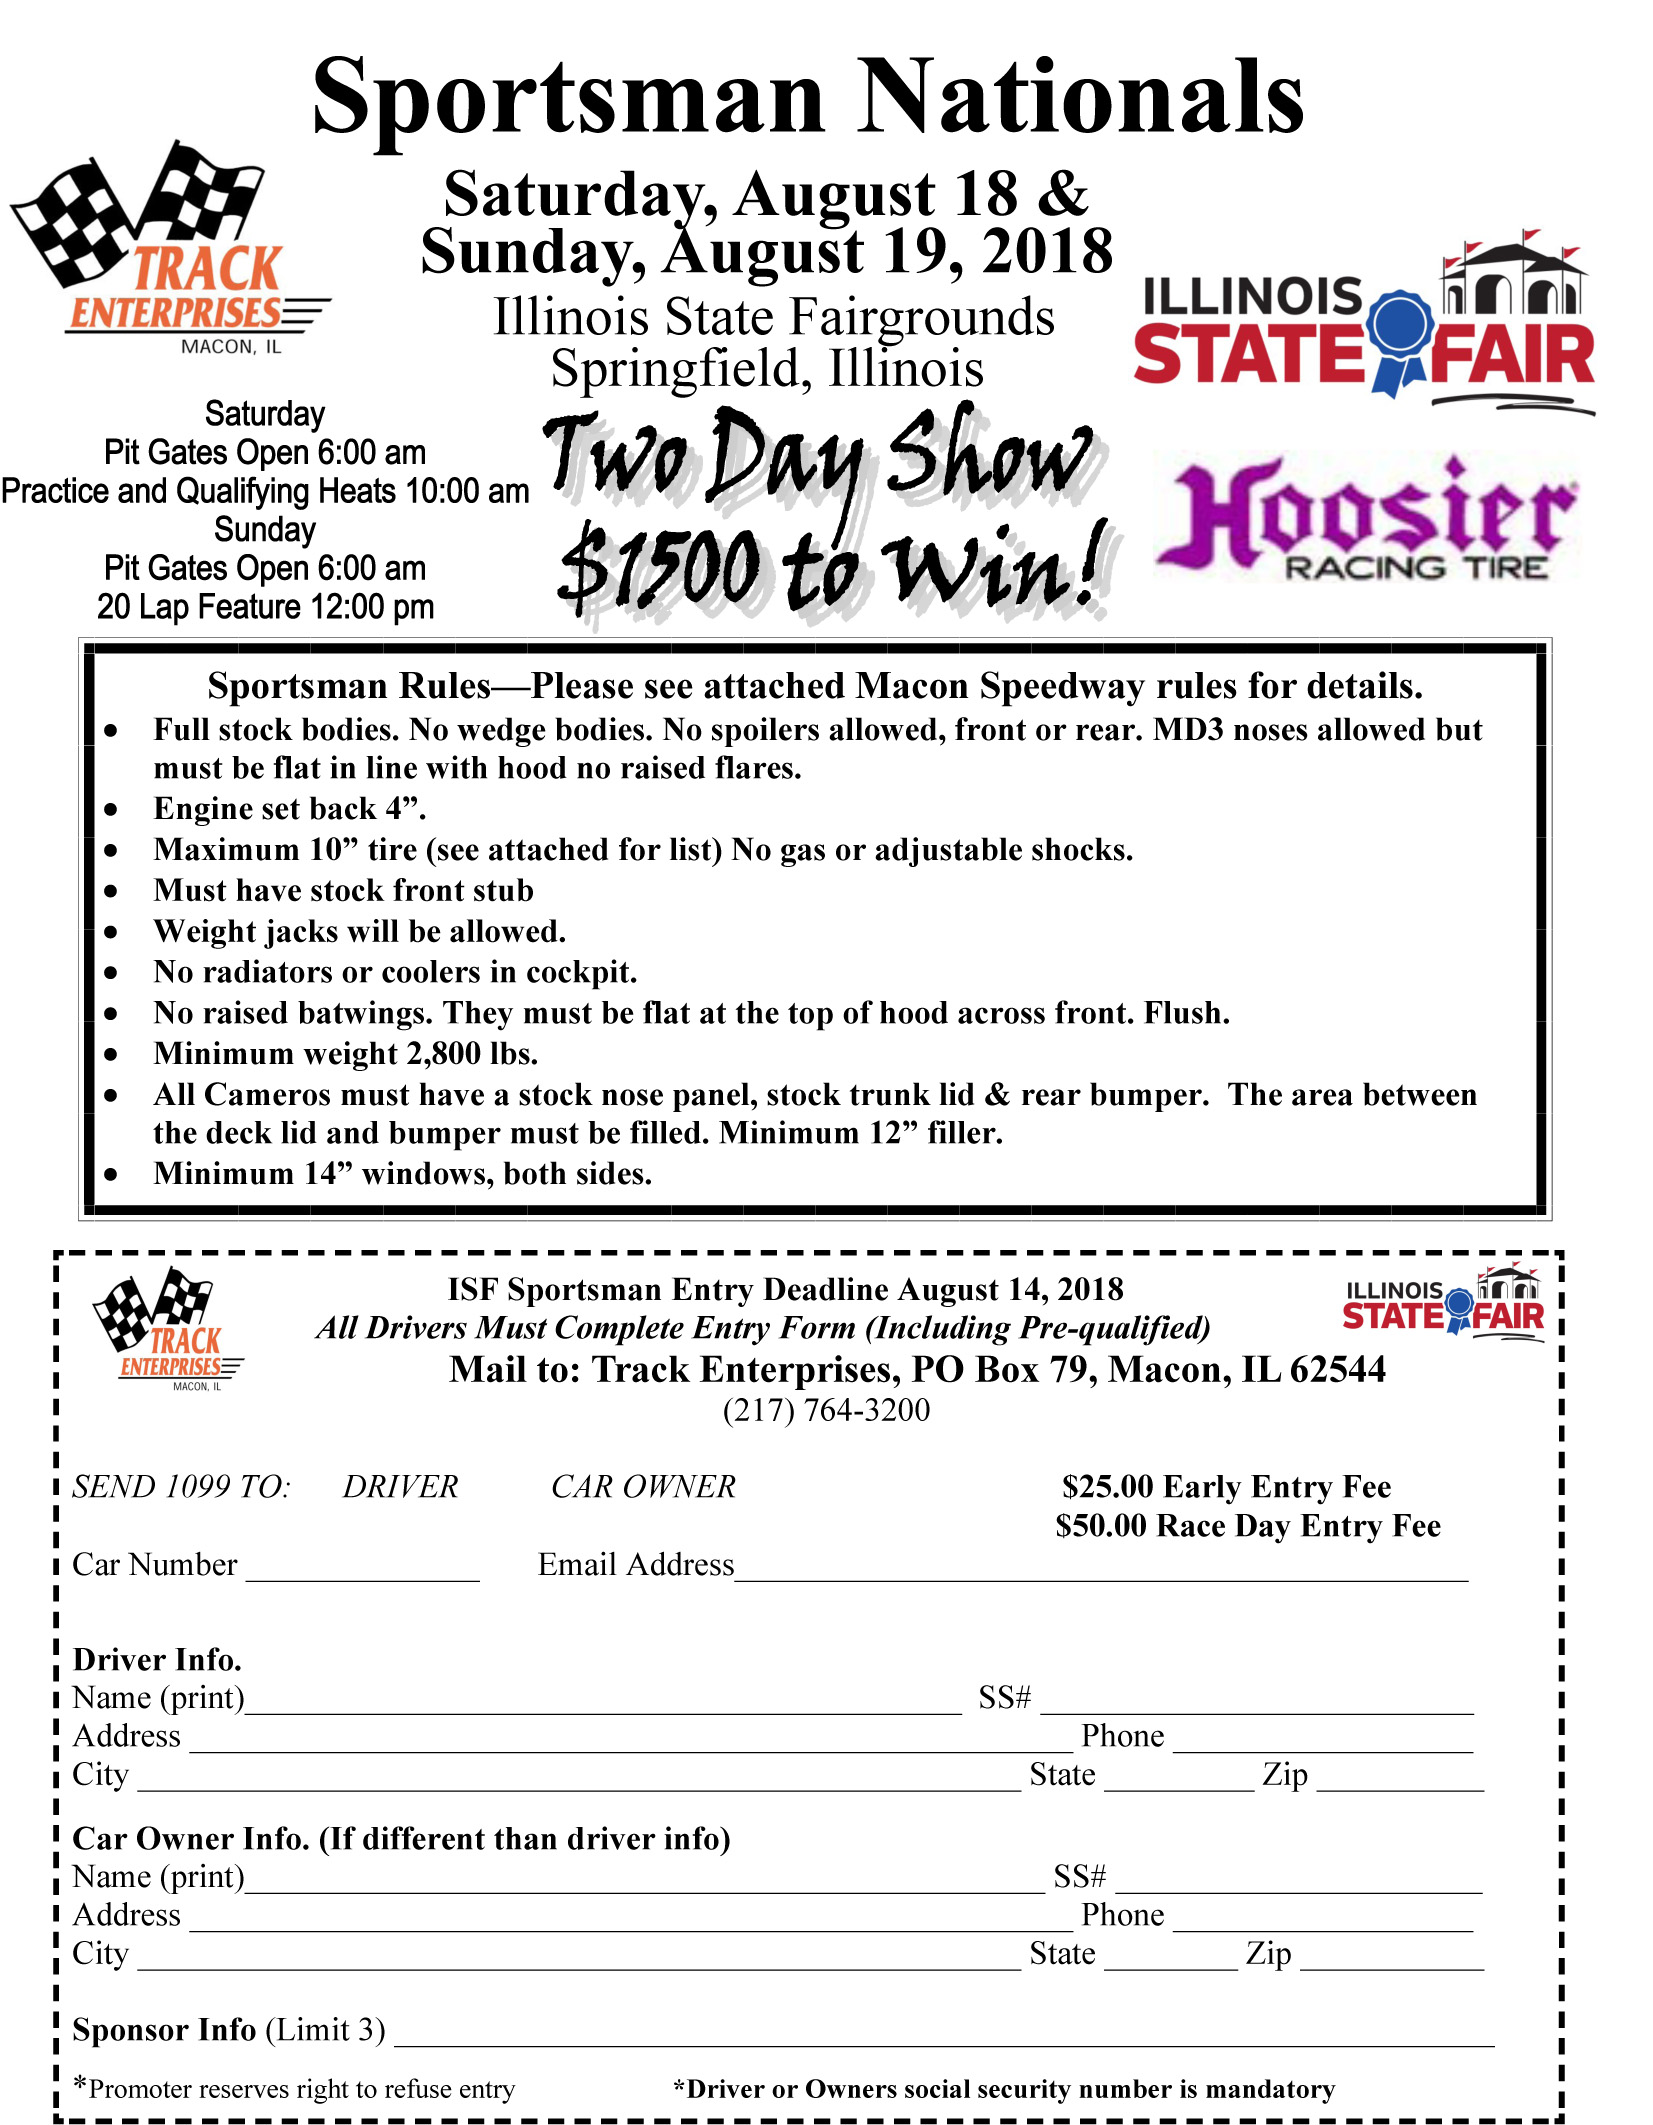 Sportsman Entry Form Illinois State Fair 2018